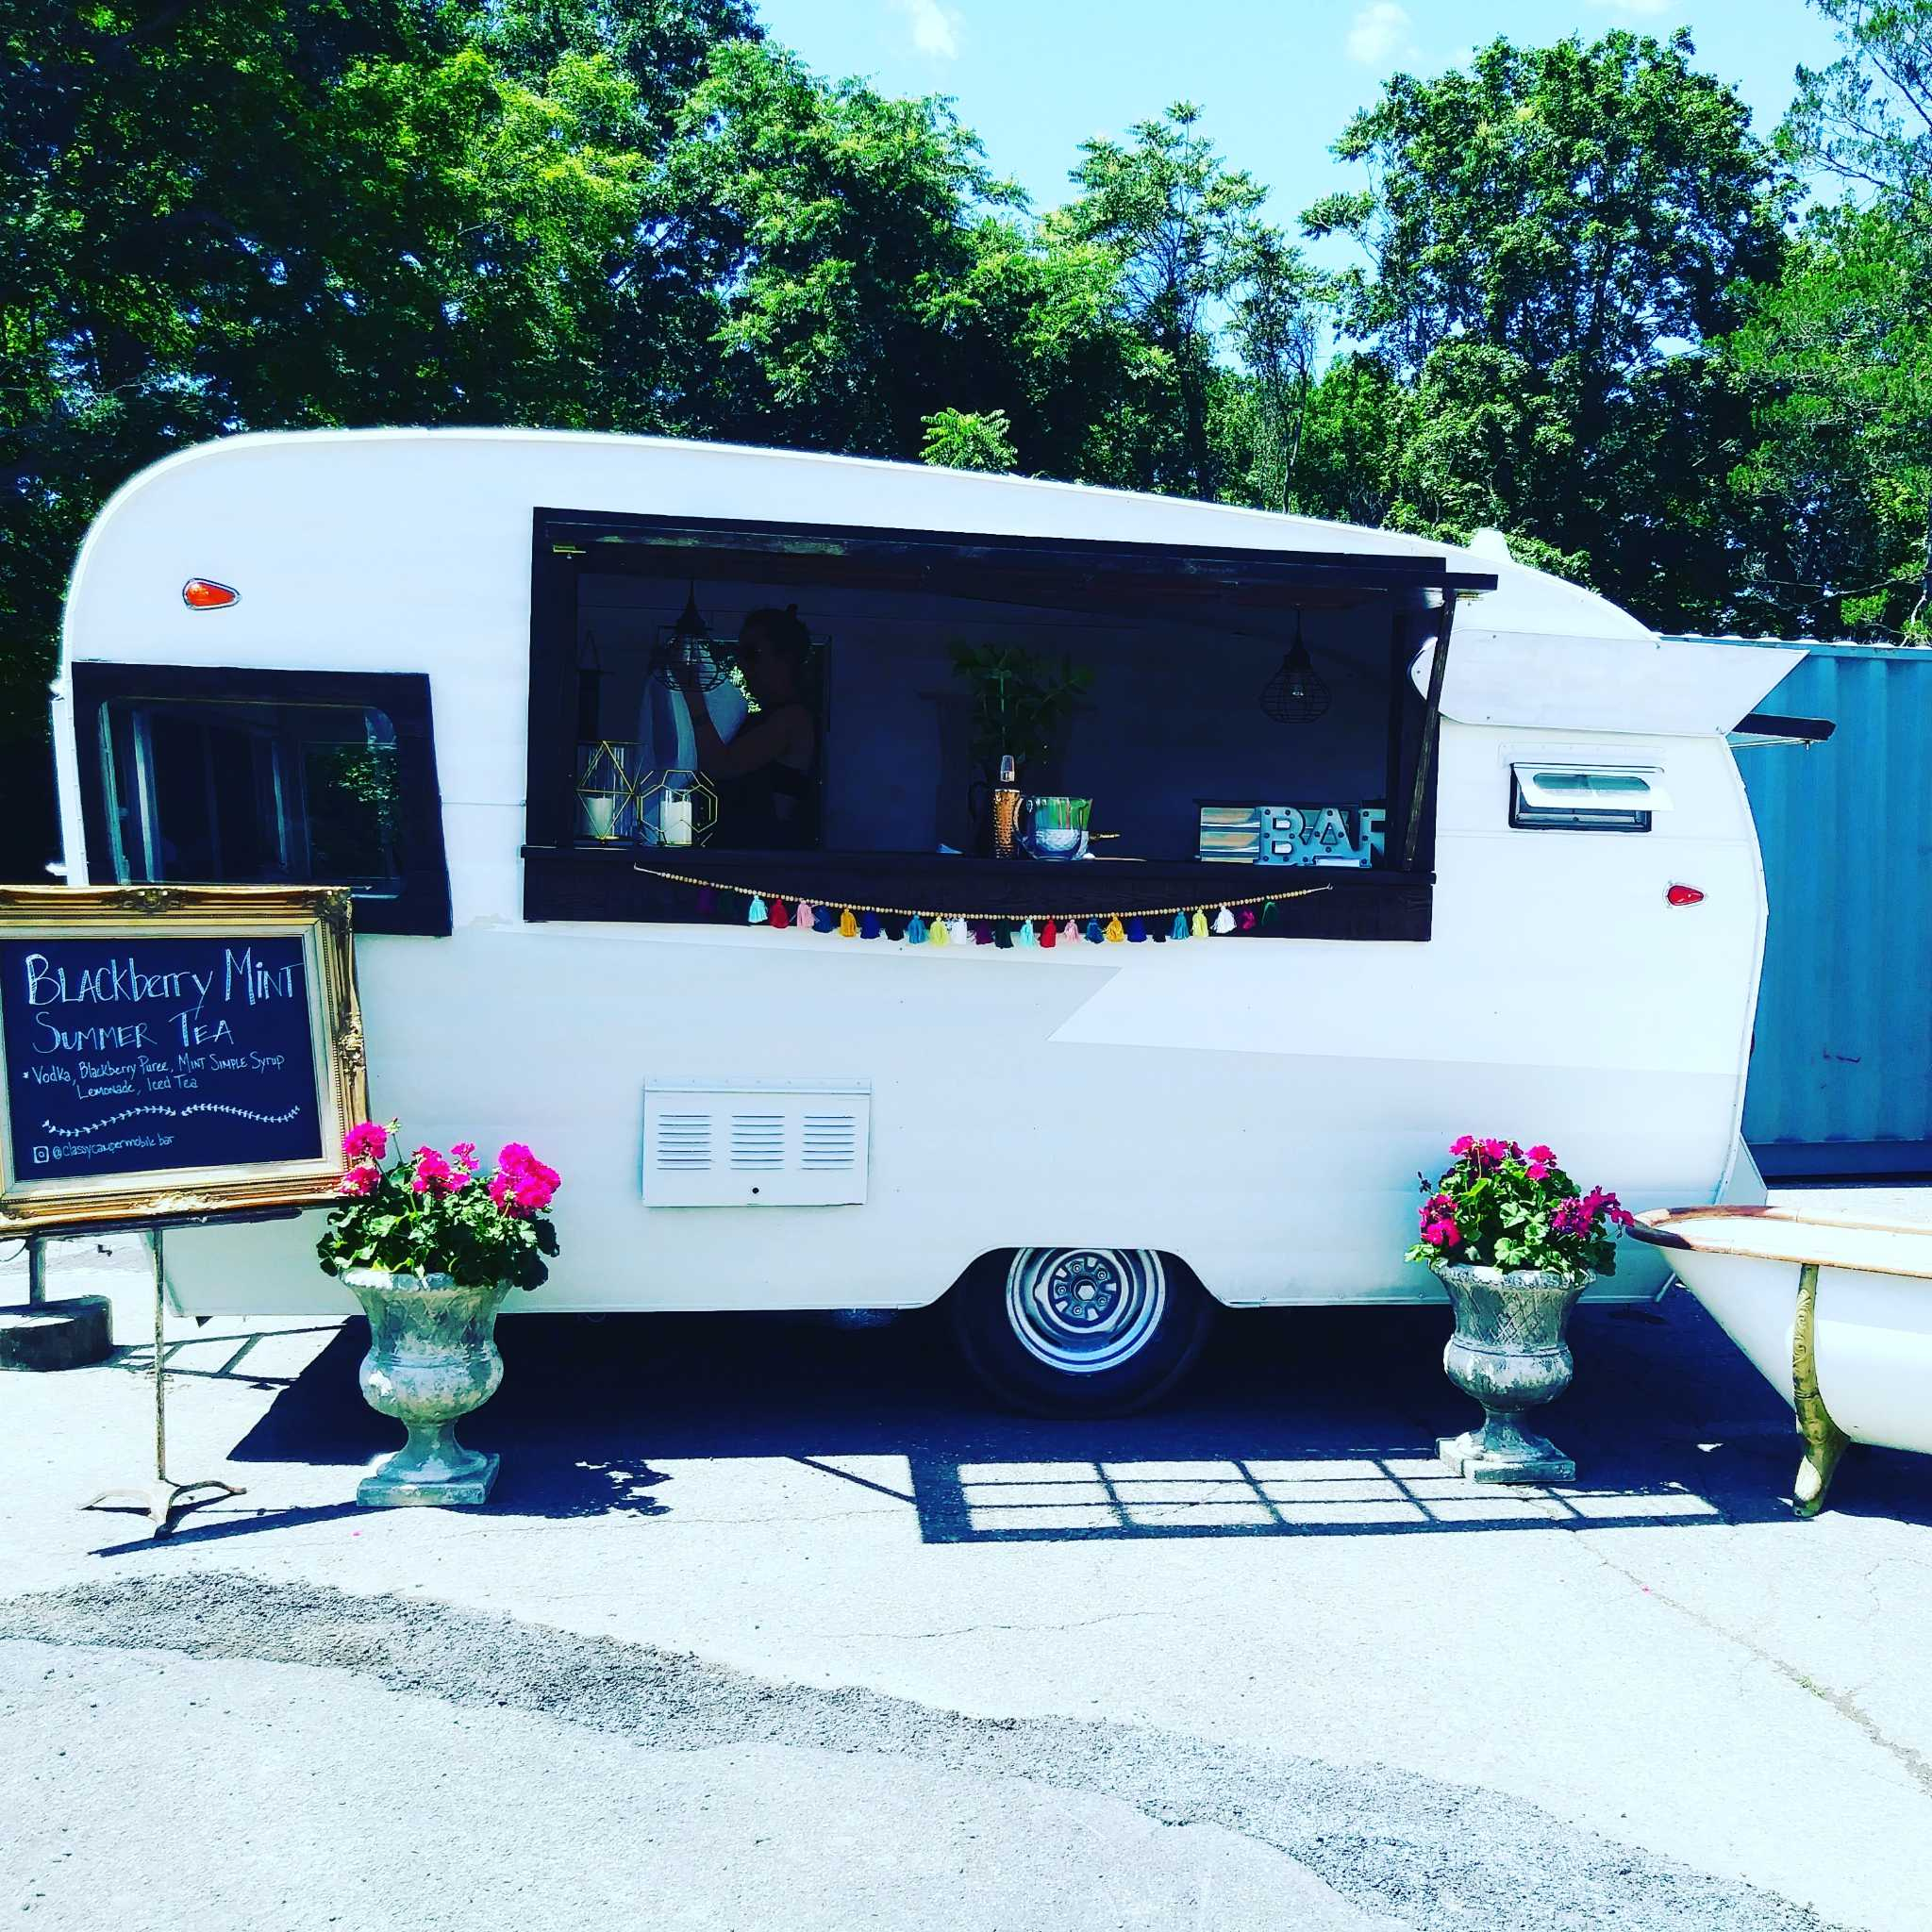 Area's moveable bars are actually converted campers - Times